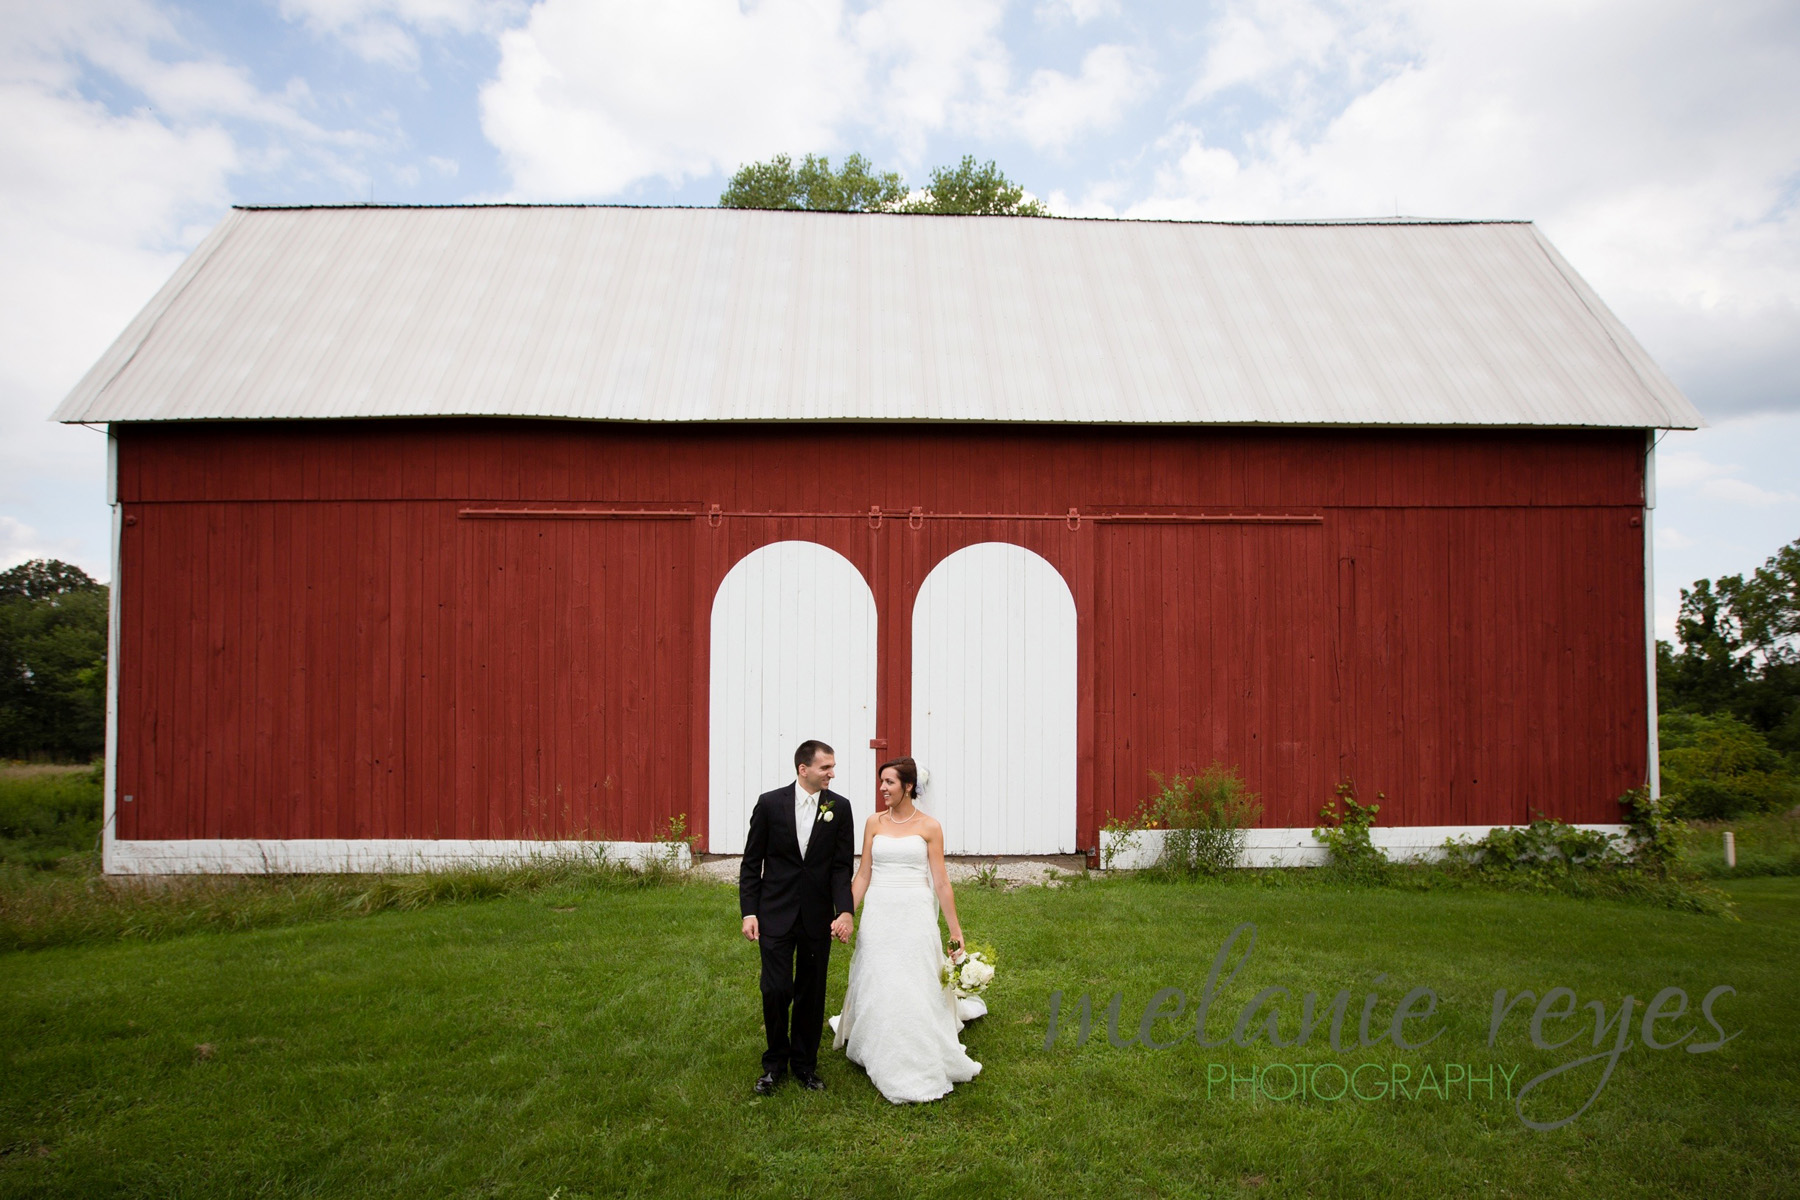 ann_arbor_wedding_photographer__014